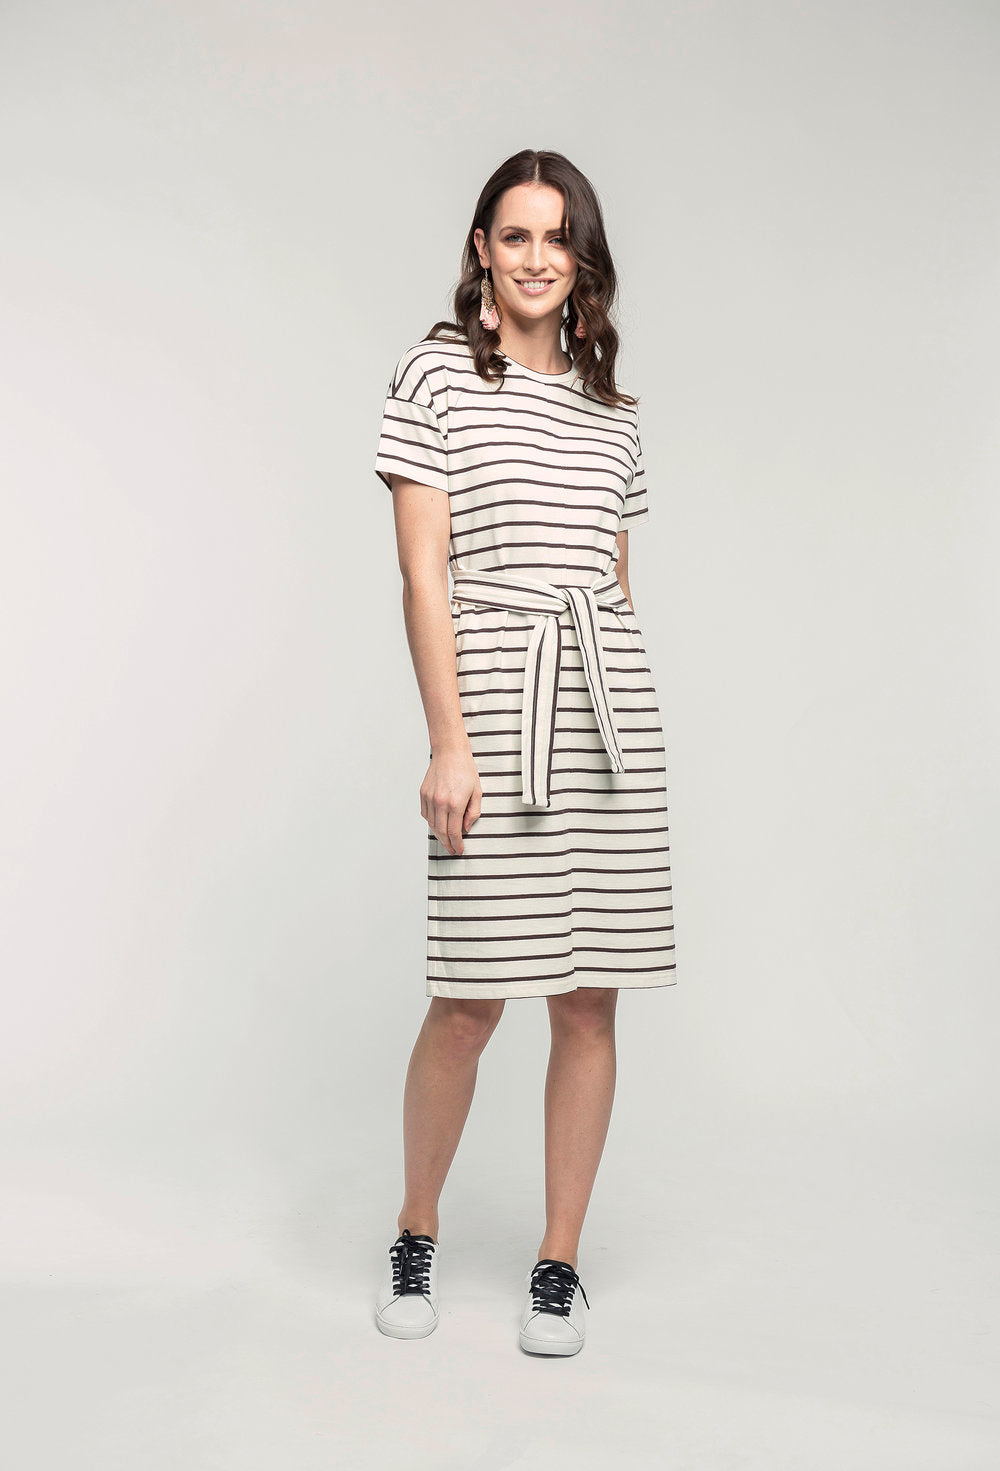 469 Theodora Dress - chestnut stripe  (3).jpg